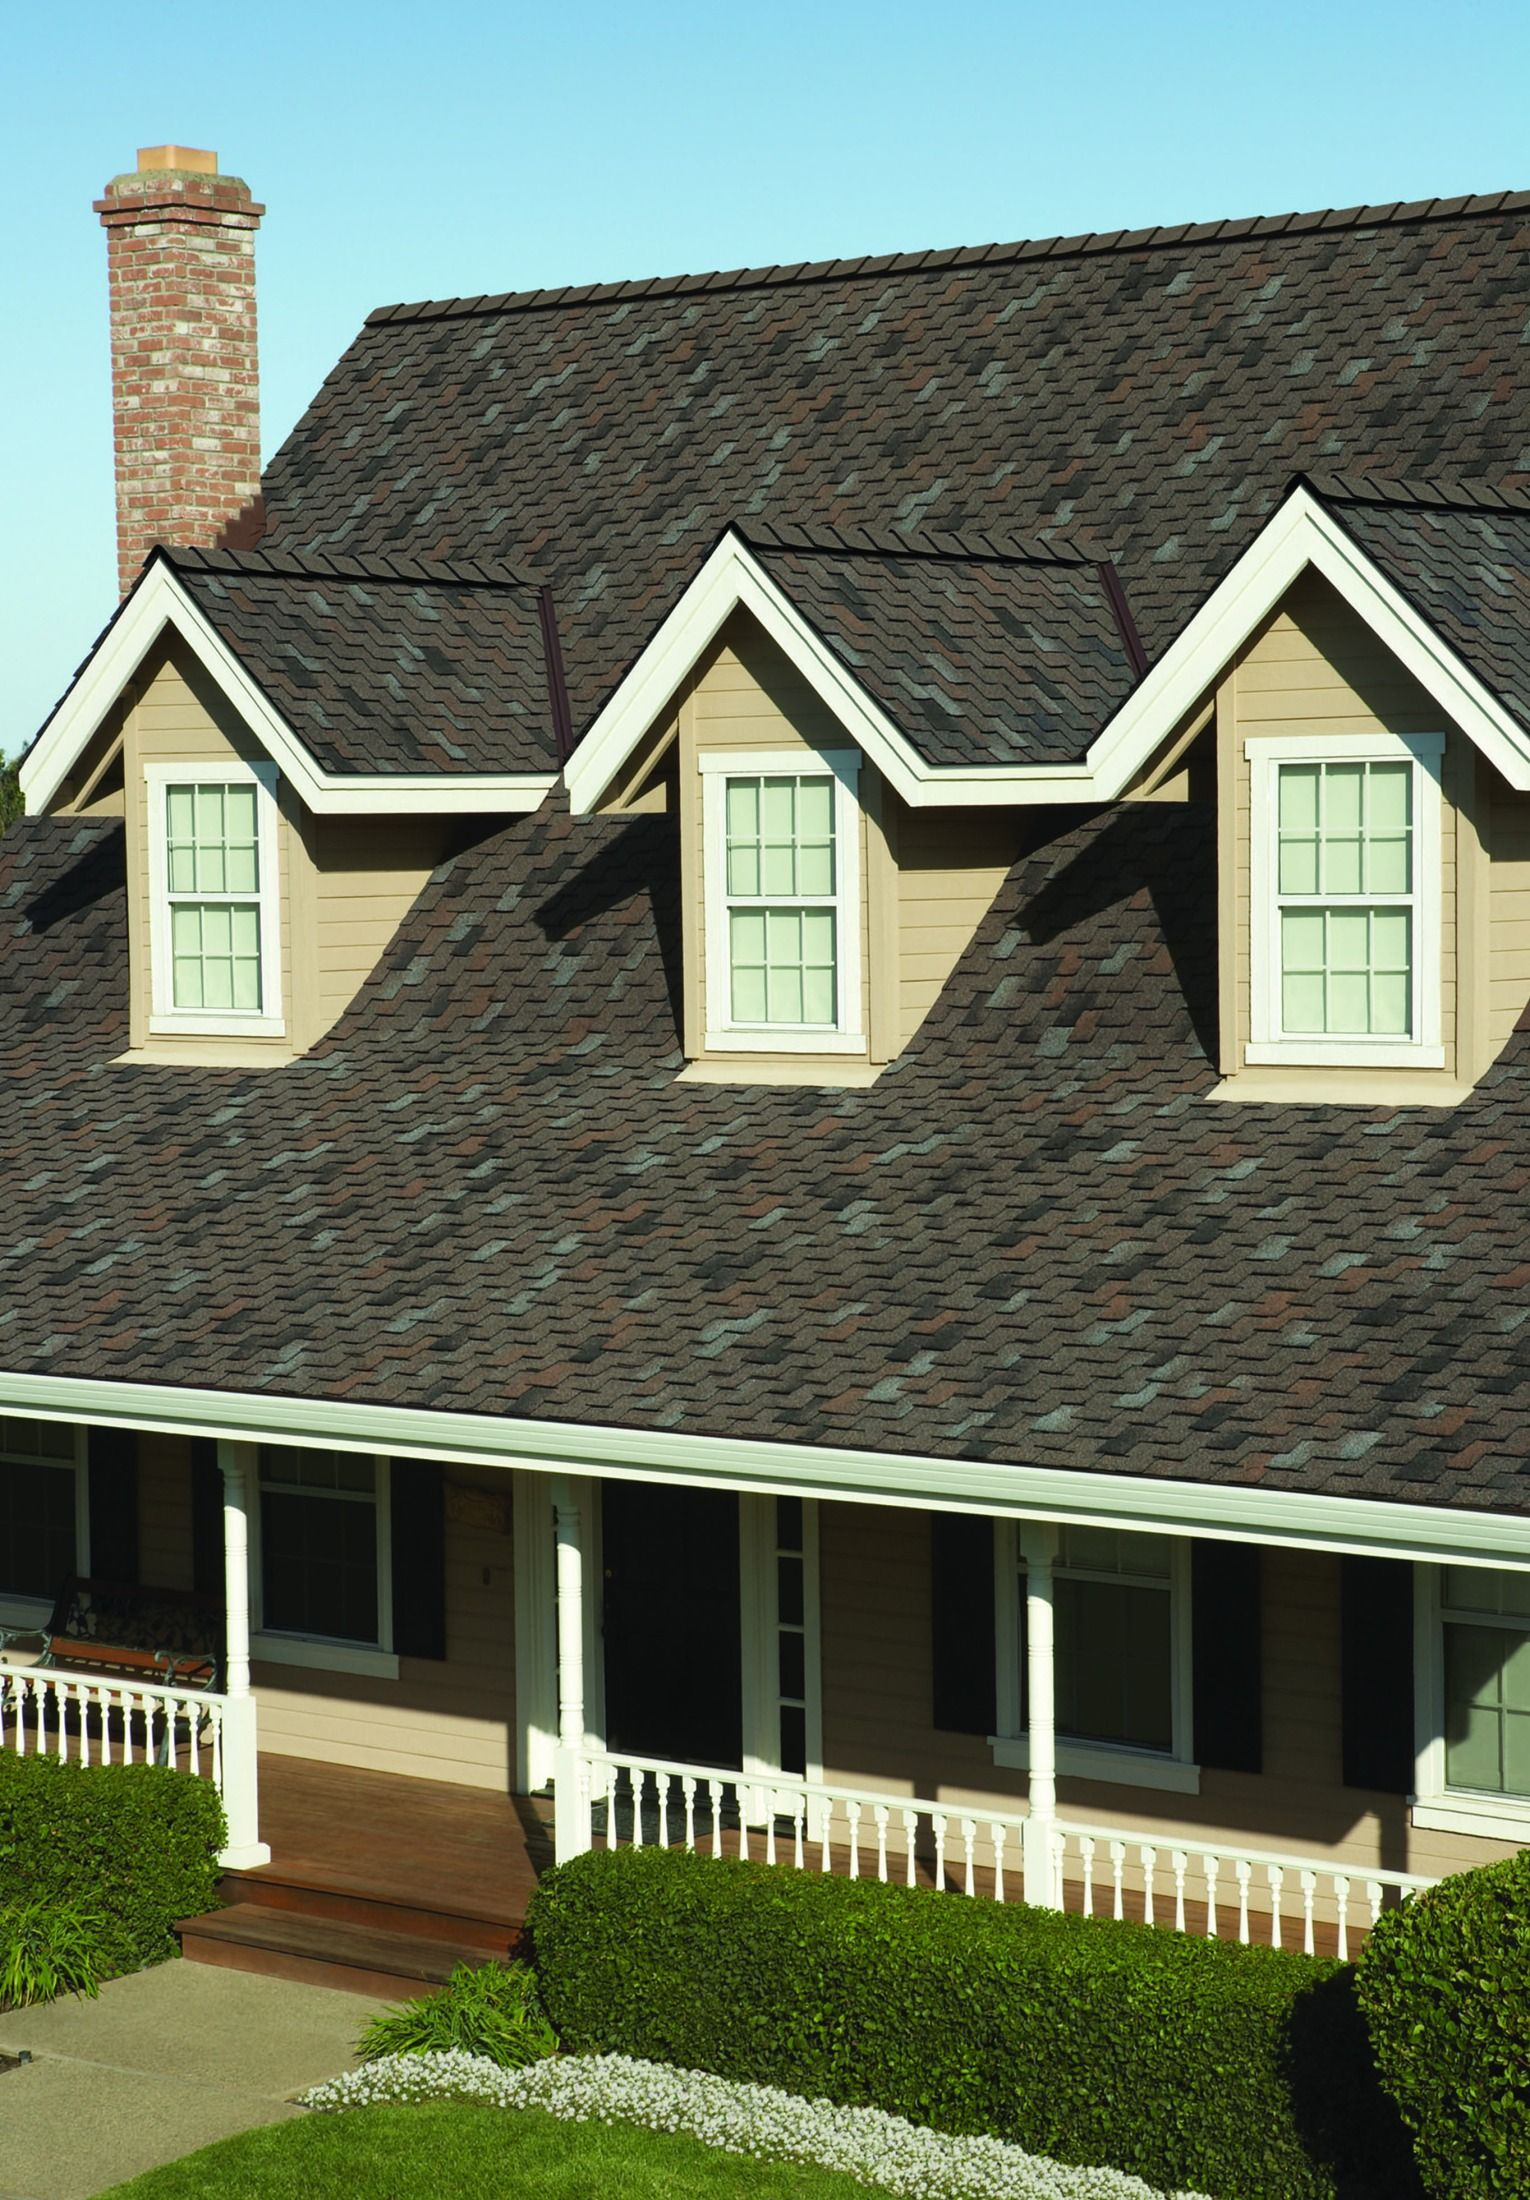 Don T Blow Your Budget With Woodcrest Shingles By Owens Corning You Ll Get The Wood Shake Look You Want At A Price You L Wood Shakes Curb Appeal House Styles